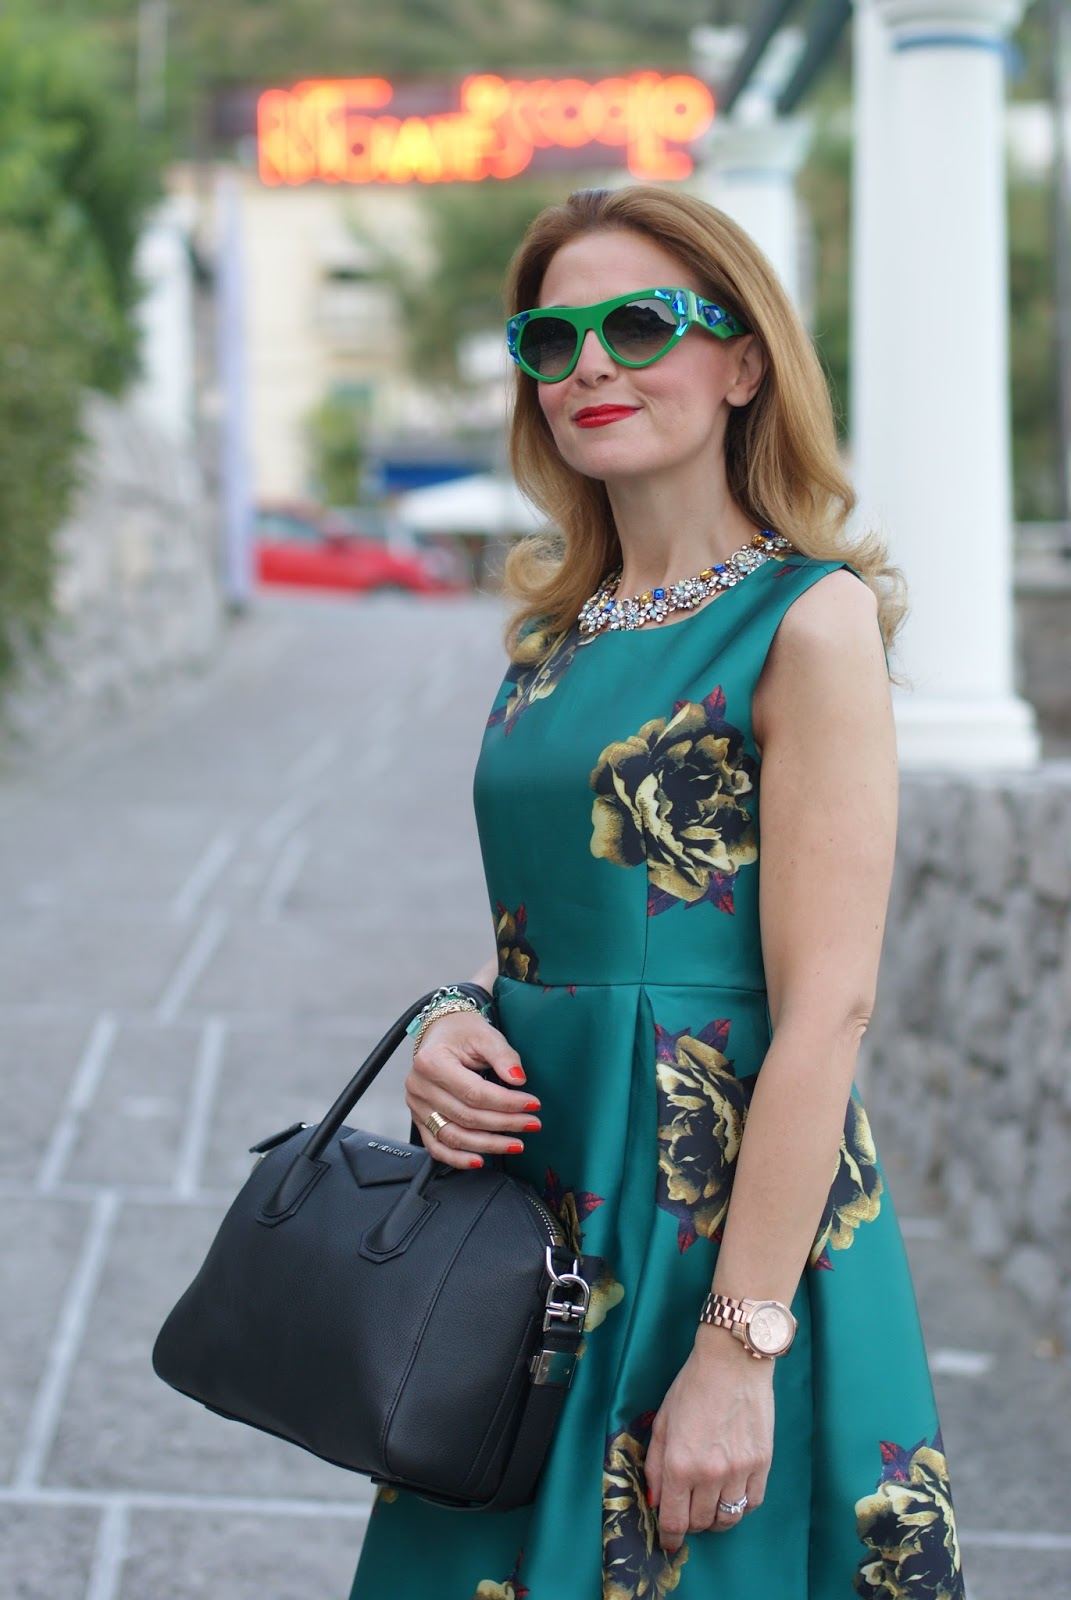 Romantic date dress, Choies green midi dress and Prada Voice sunglasses found on Giarre on Fashion and Cookies fashion blog, fashion blogger style